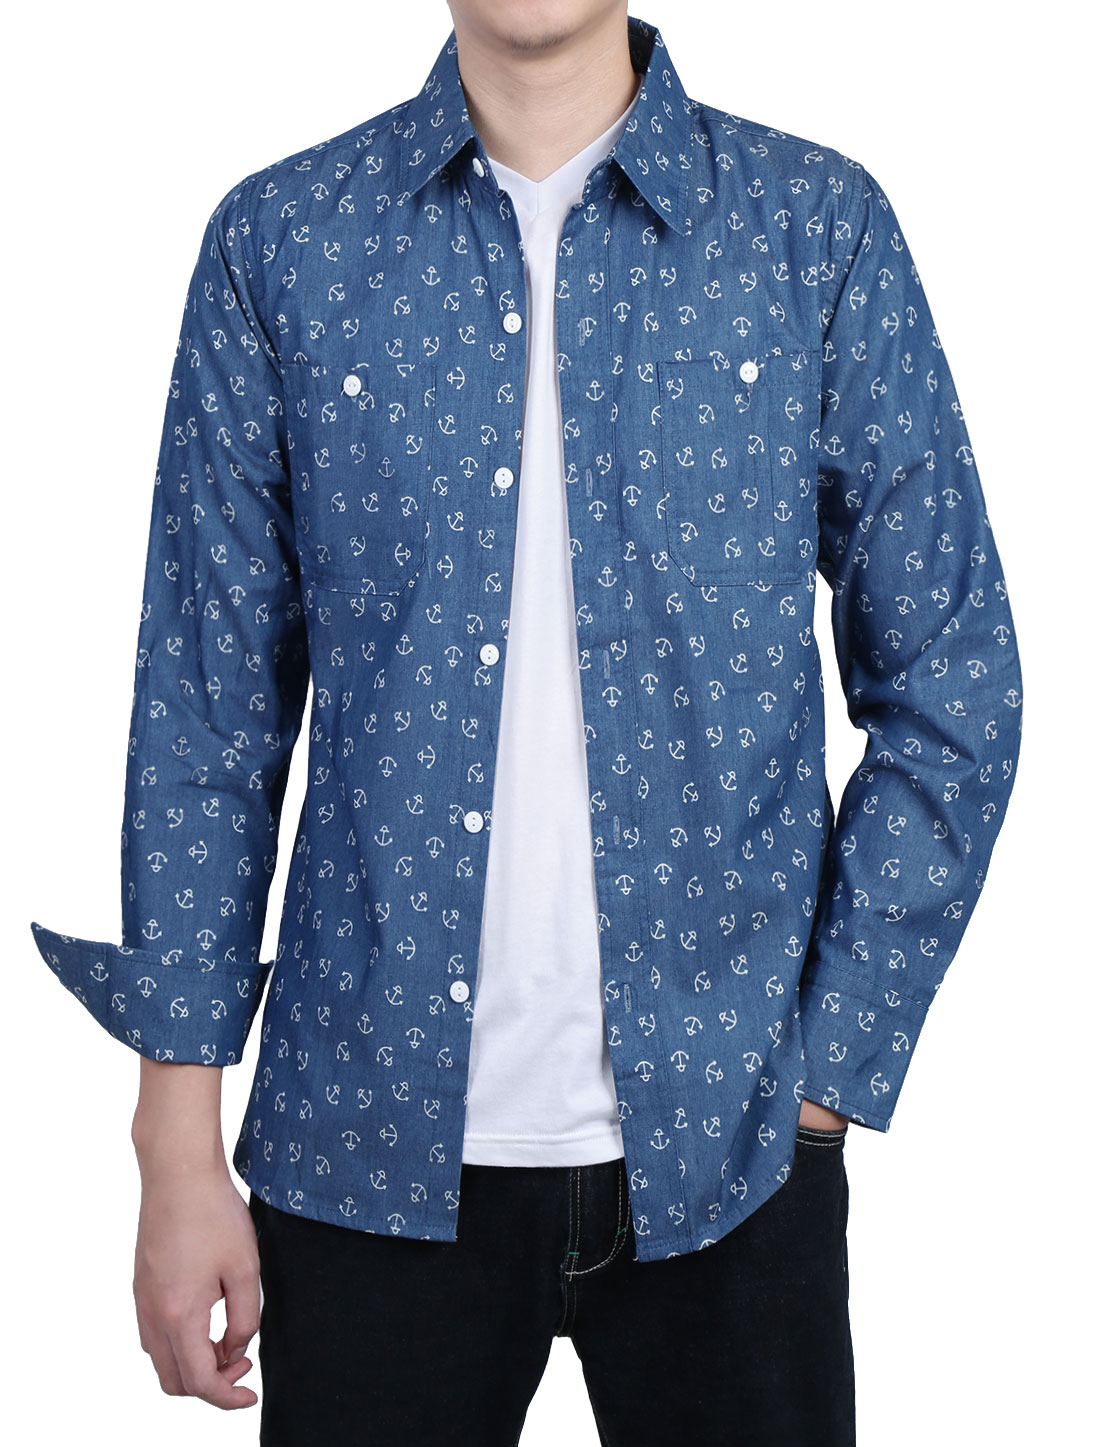 Men Long Sleeves Anchor Slim Fit Denim Button Up Shirt Navy Blue S